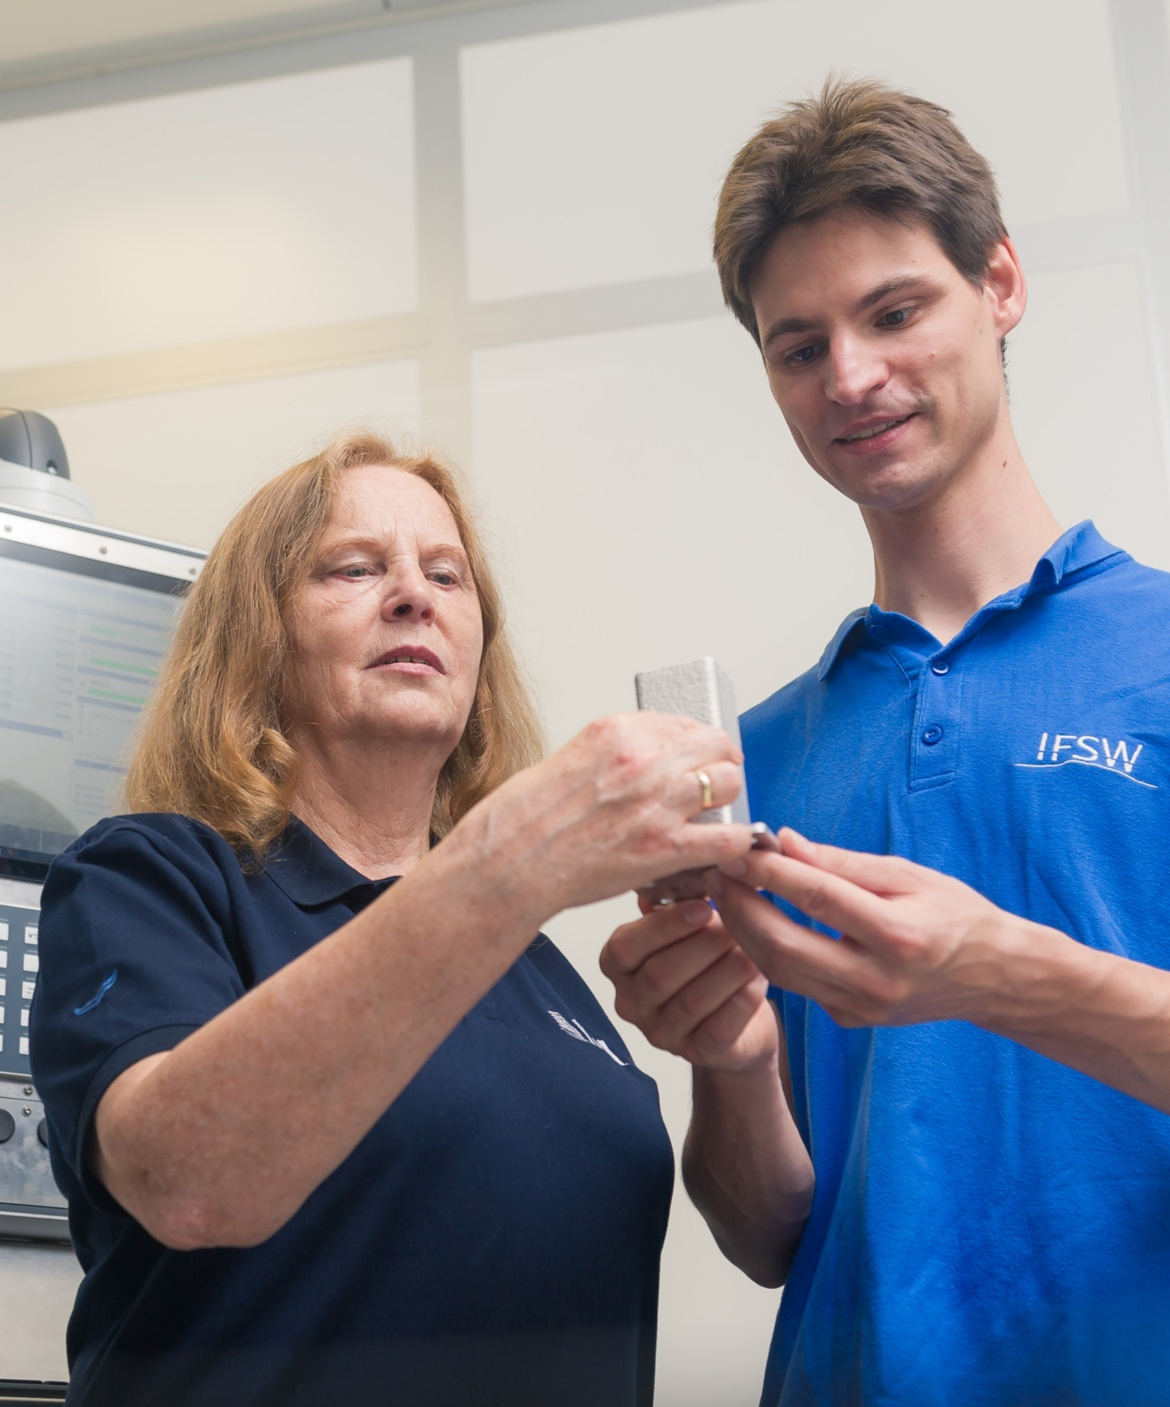 Dr. Becker (left) and Steffen Boley (right) together hold a test component in their hands and look at it while testing.